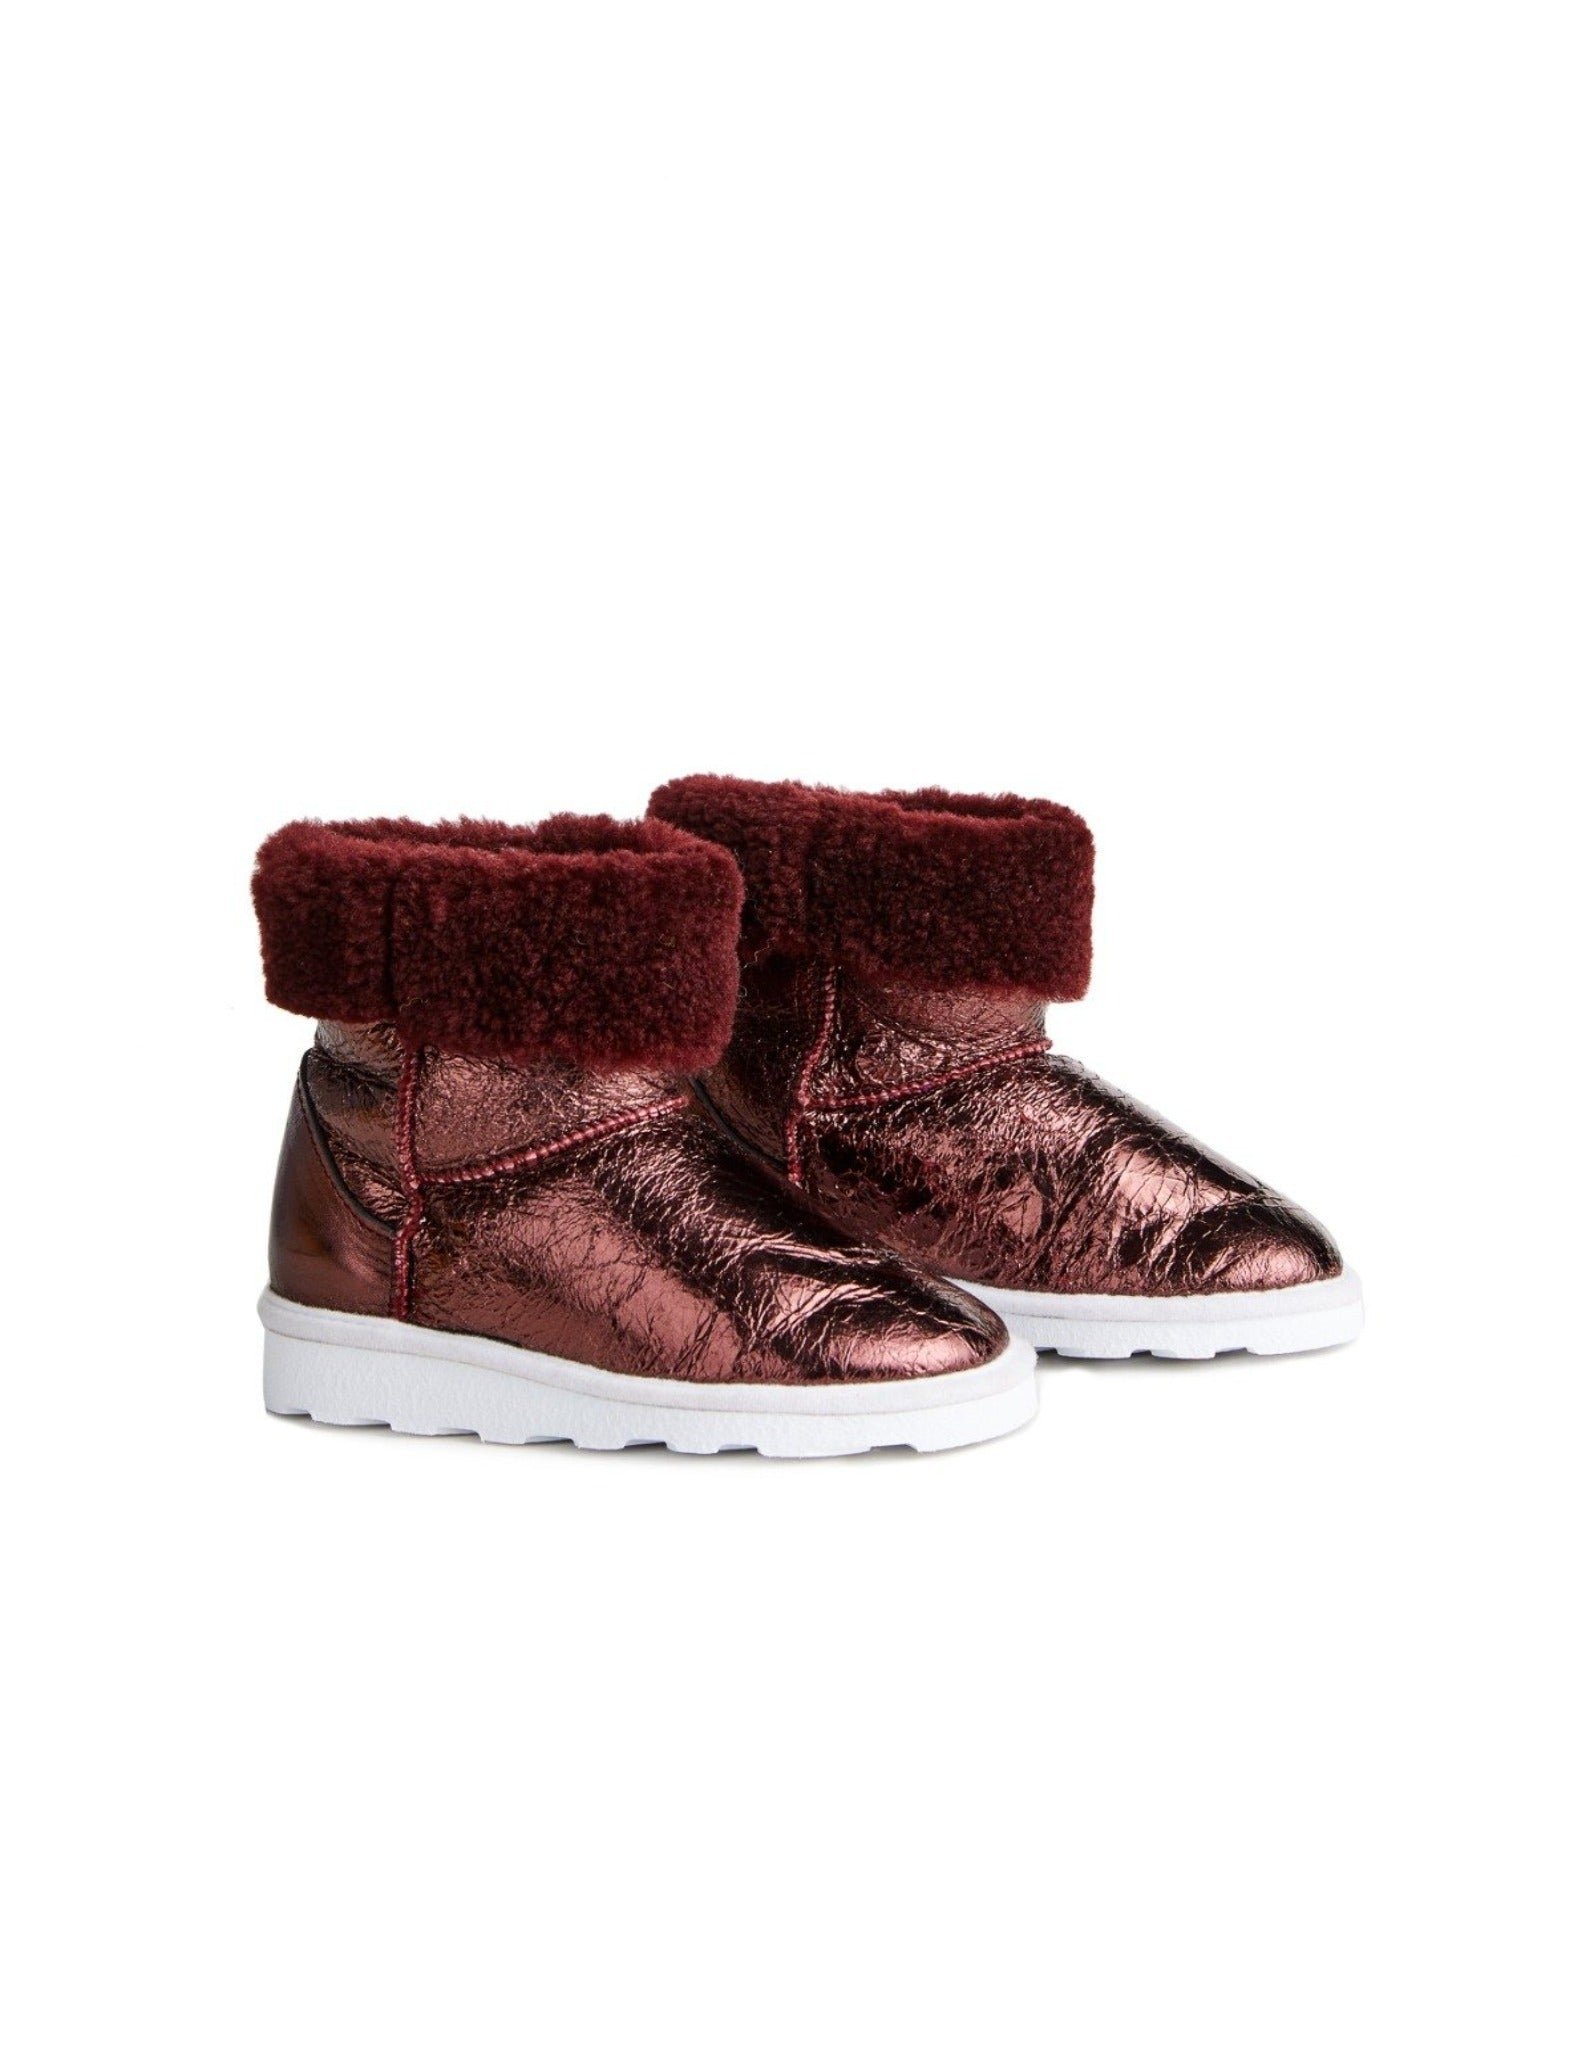 M'A KIDS LEATHER BOOTS IN BURGUNDY